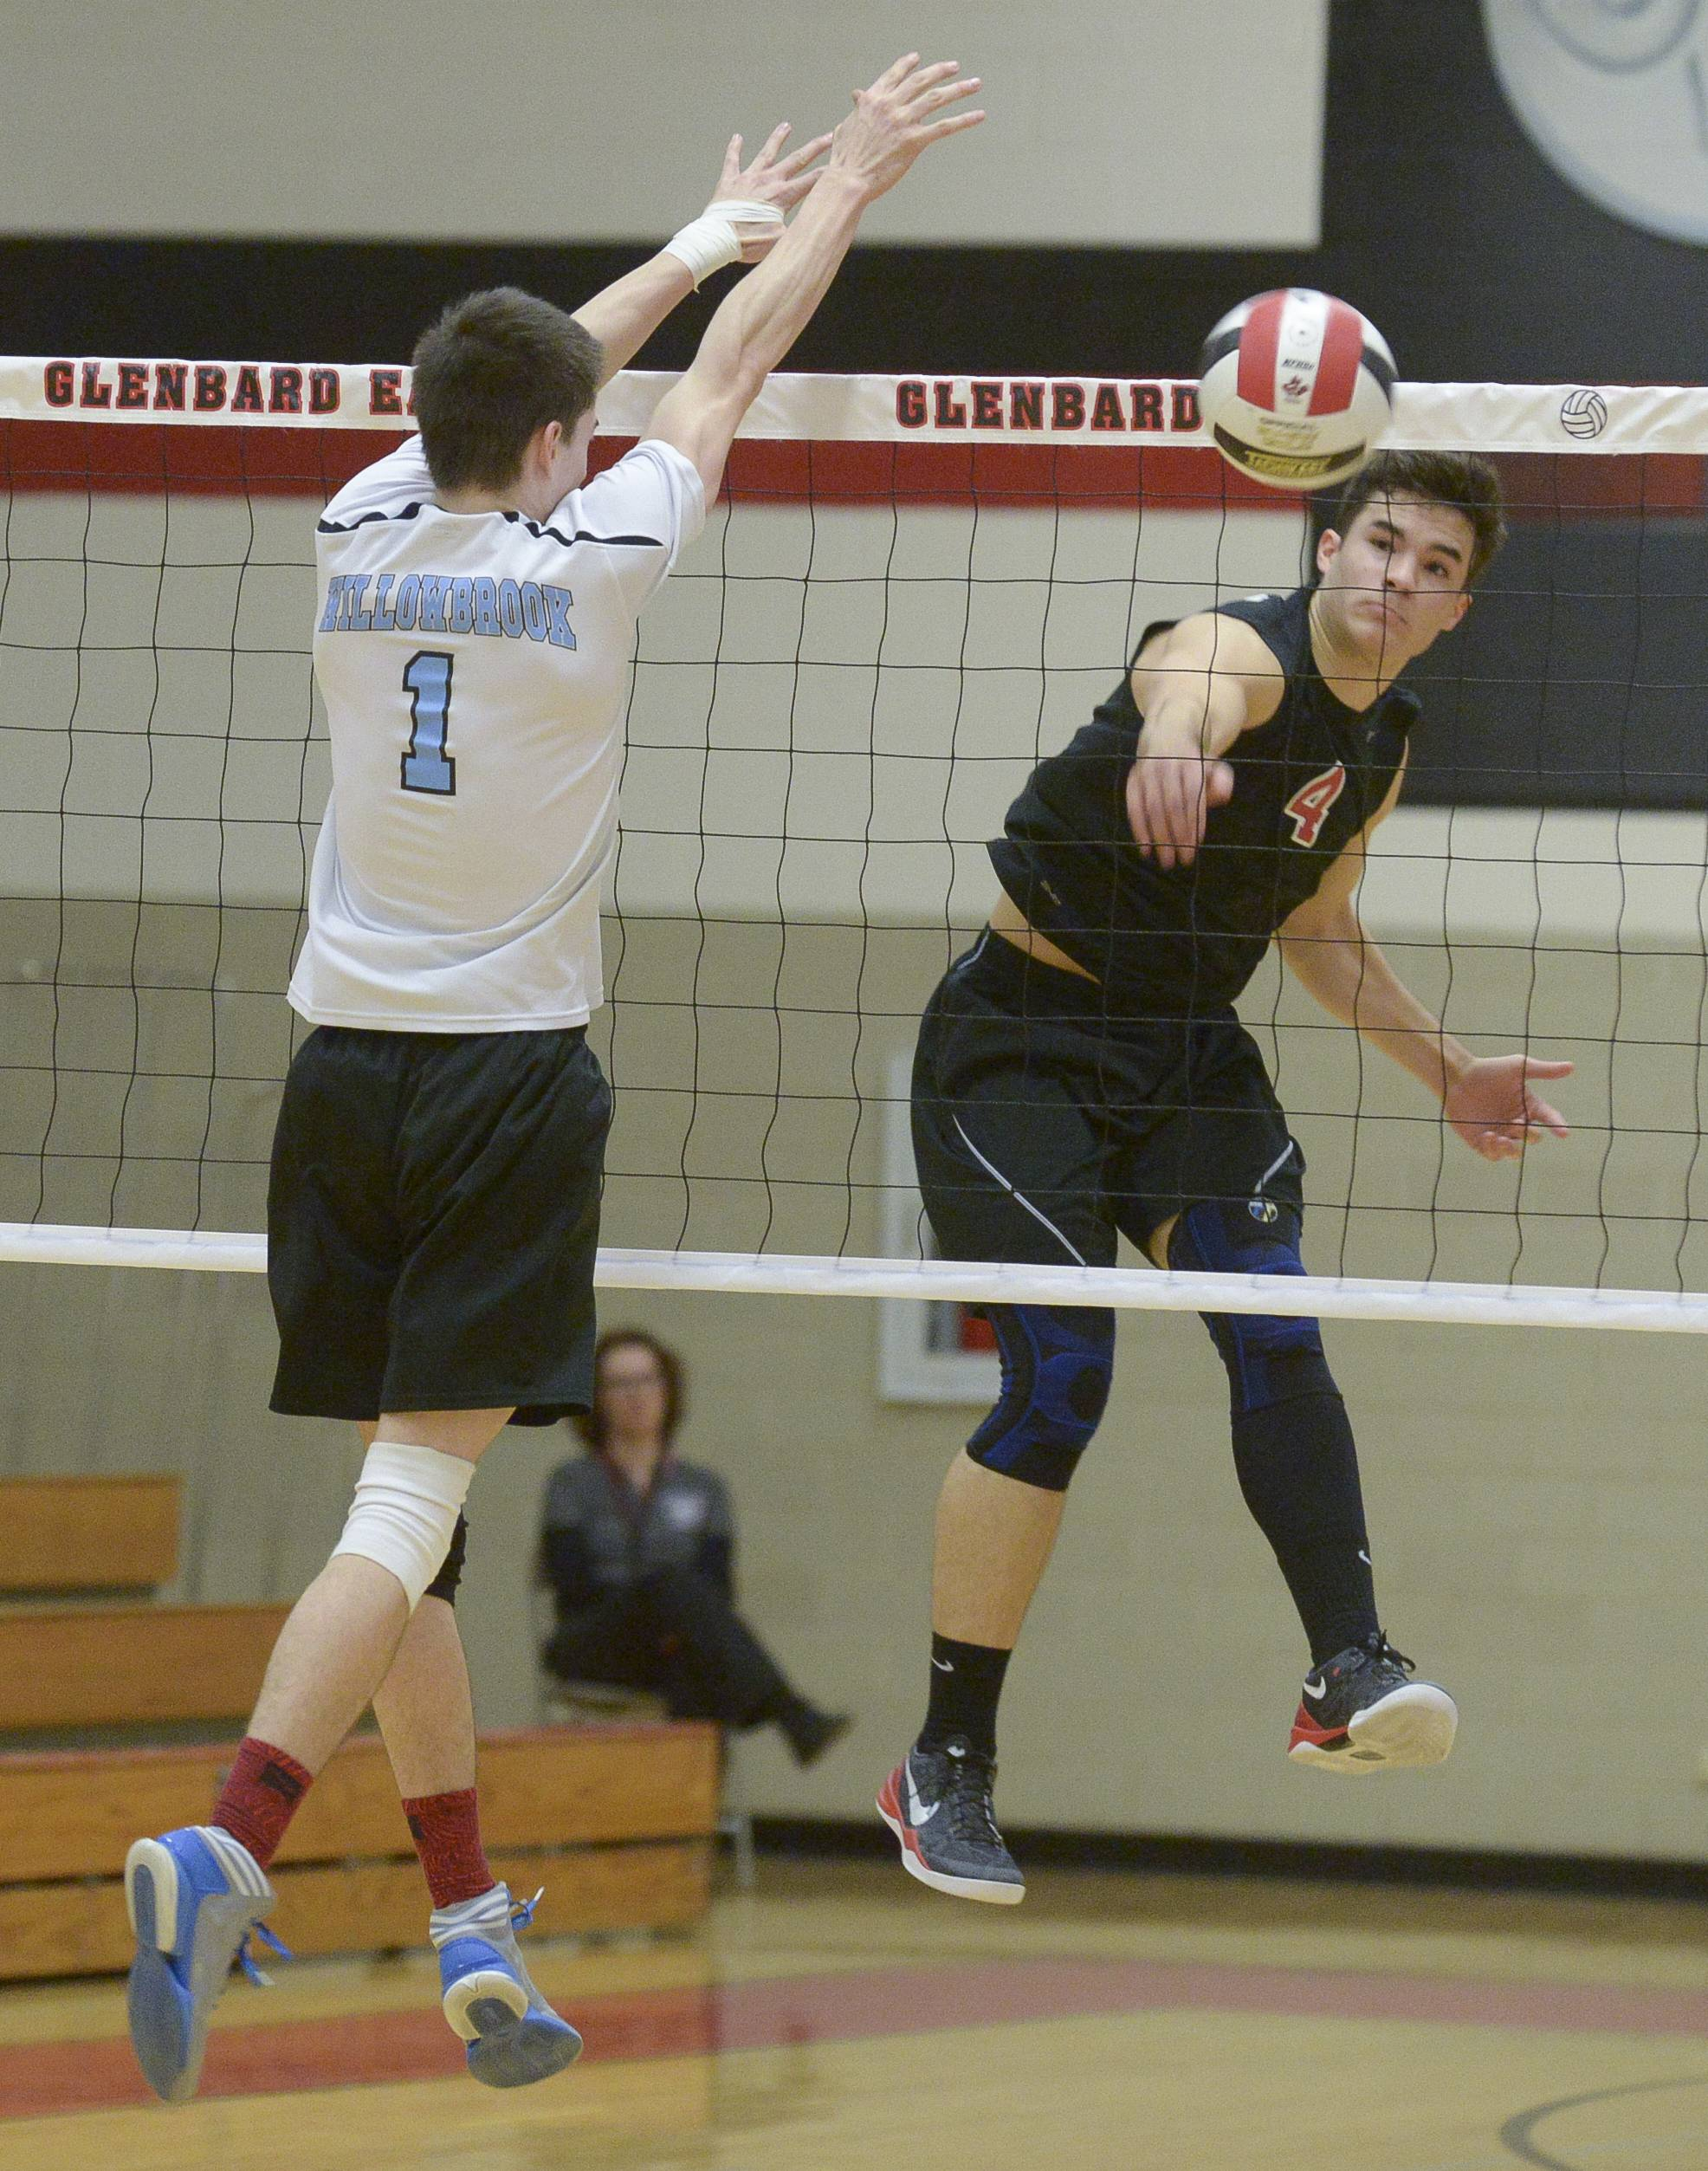 Glenbard East's Sterling Glover fires one past Willowbrook's Ryan Wakely during in boys varsity volleyball in Lombard Wednesday.